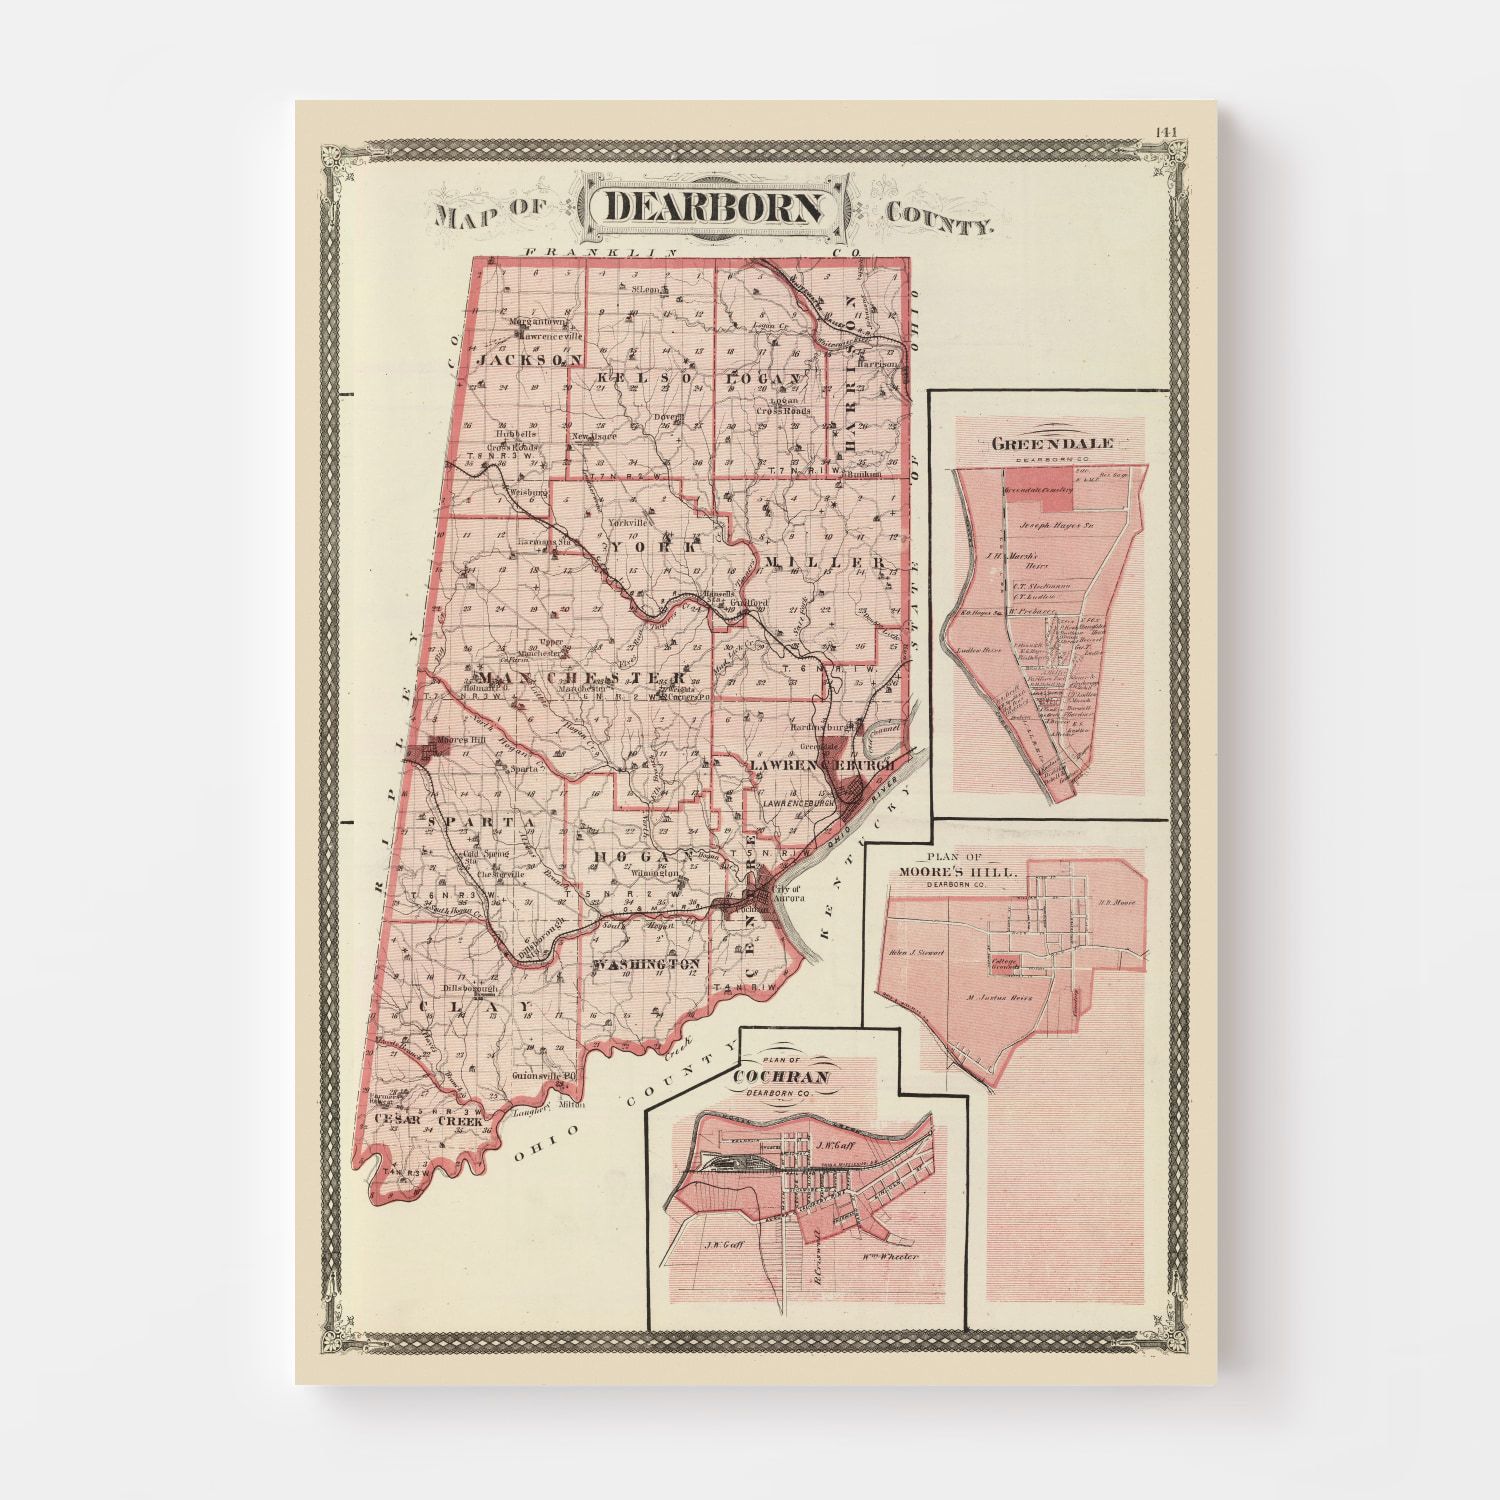 Vintage Map of Dearborn County Indiana, 1876